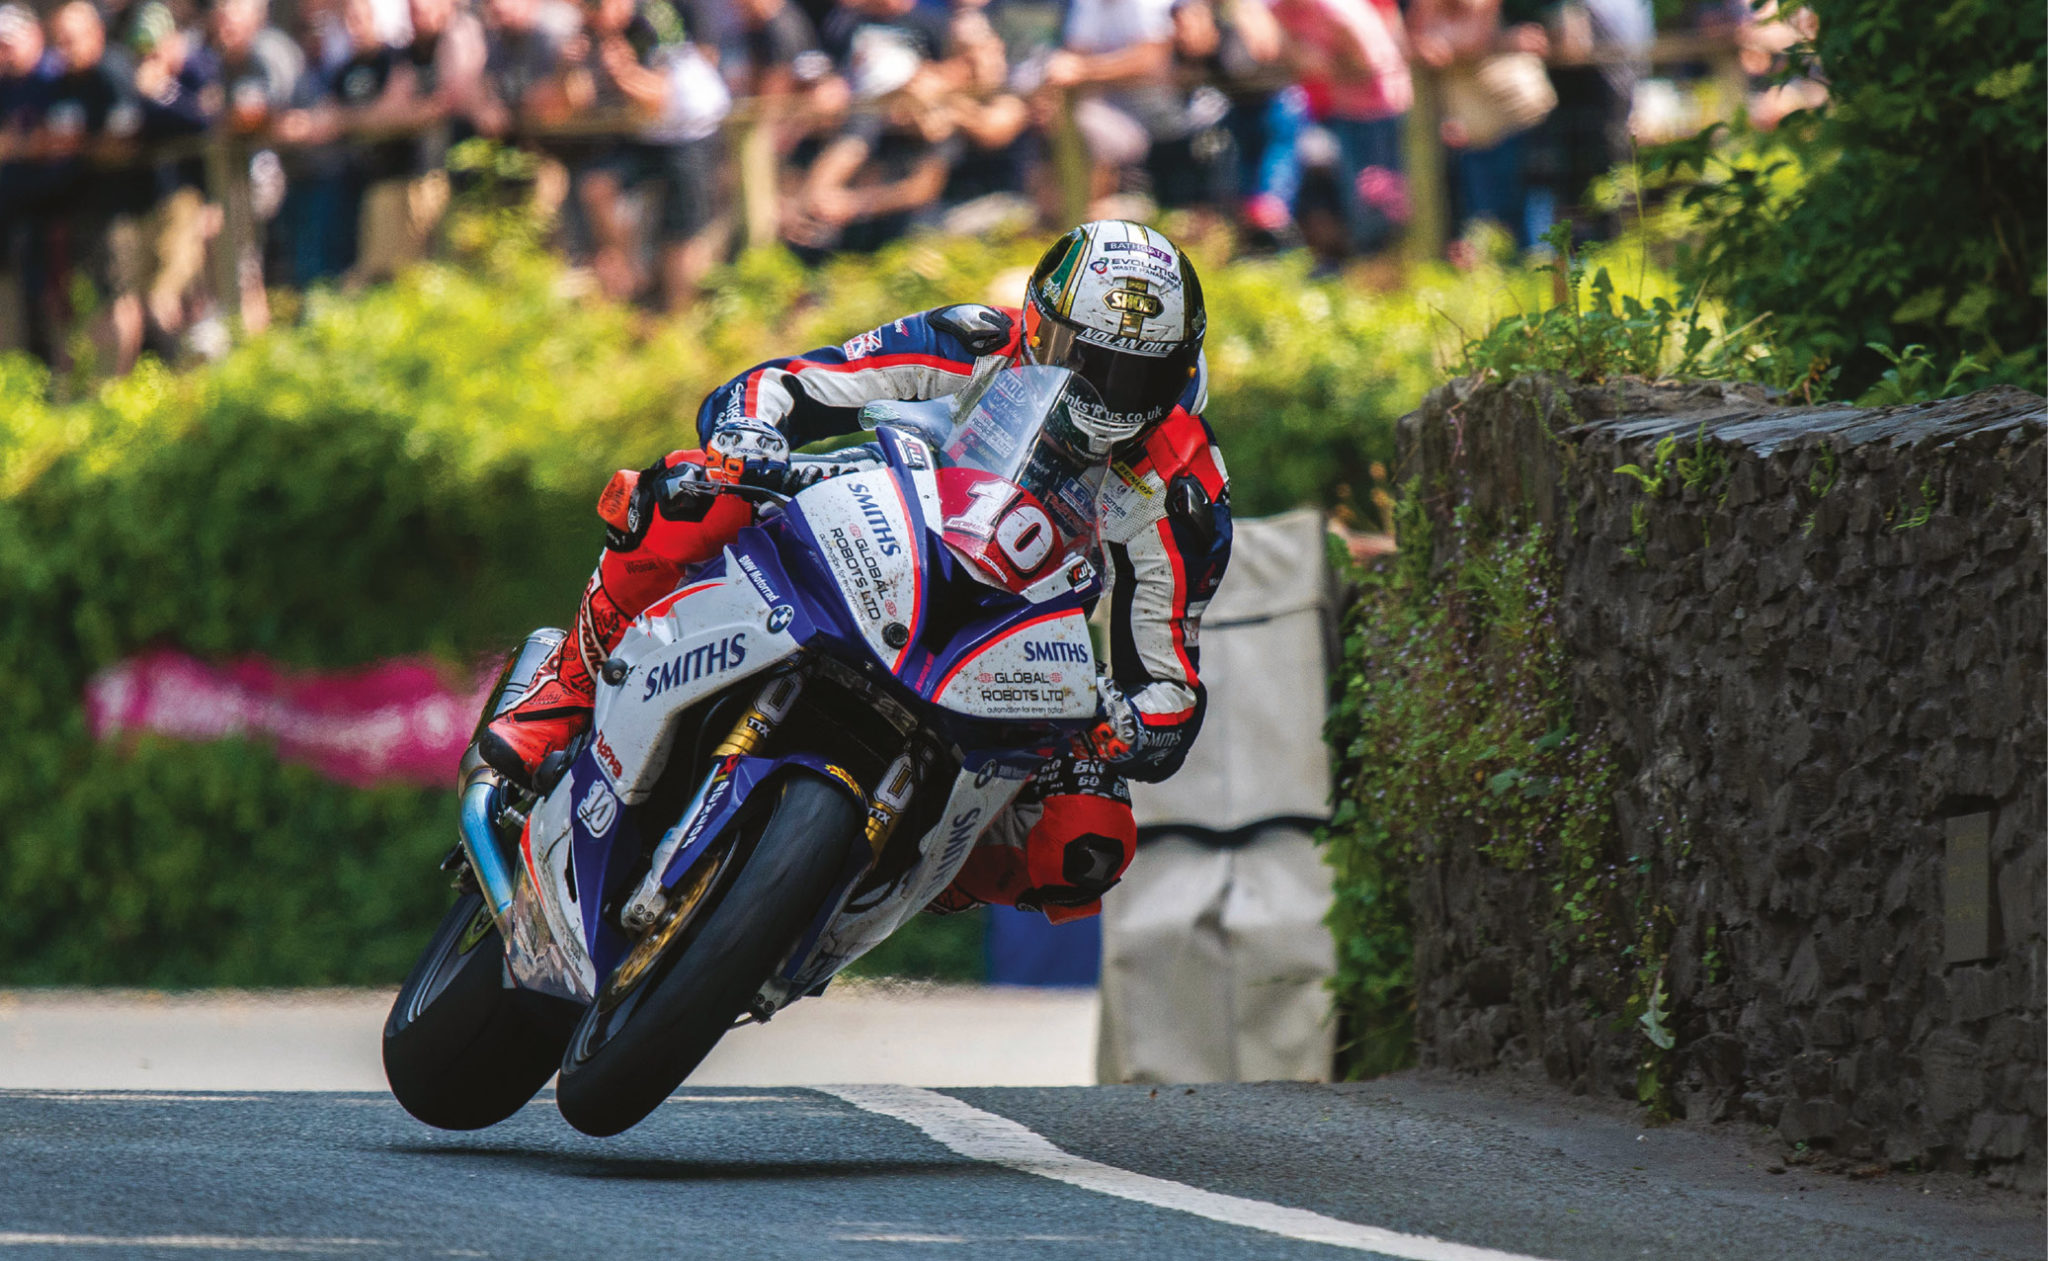 Hickman contested his fifth Isle of Man TT in 2018, and says it takes longer to learn all of the track's secrets